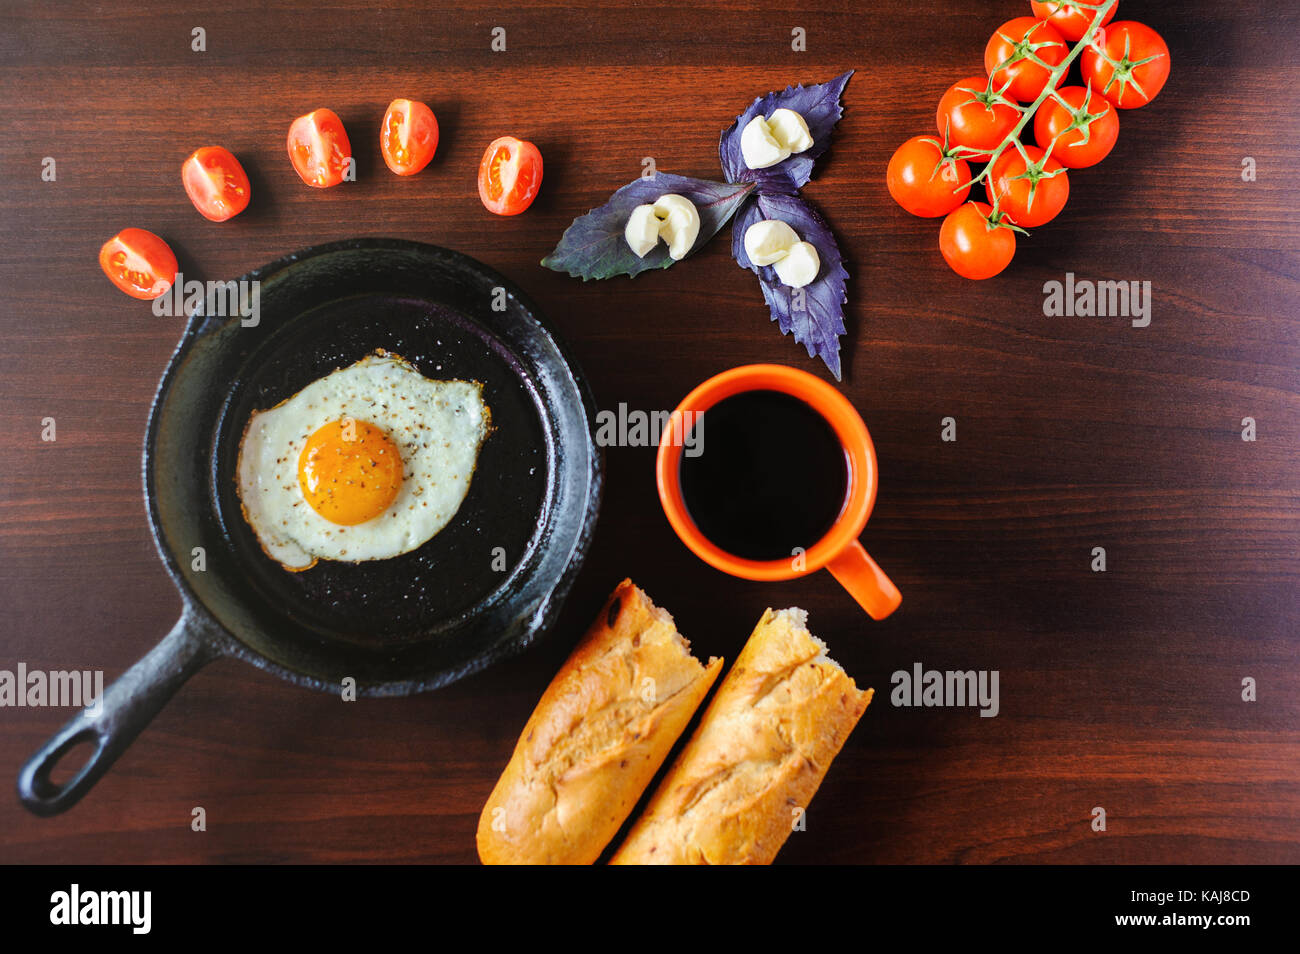 fried eggs mozzarella with basil and tomatoes on a frying pan - Stock Image